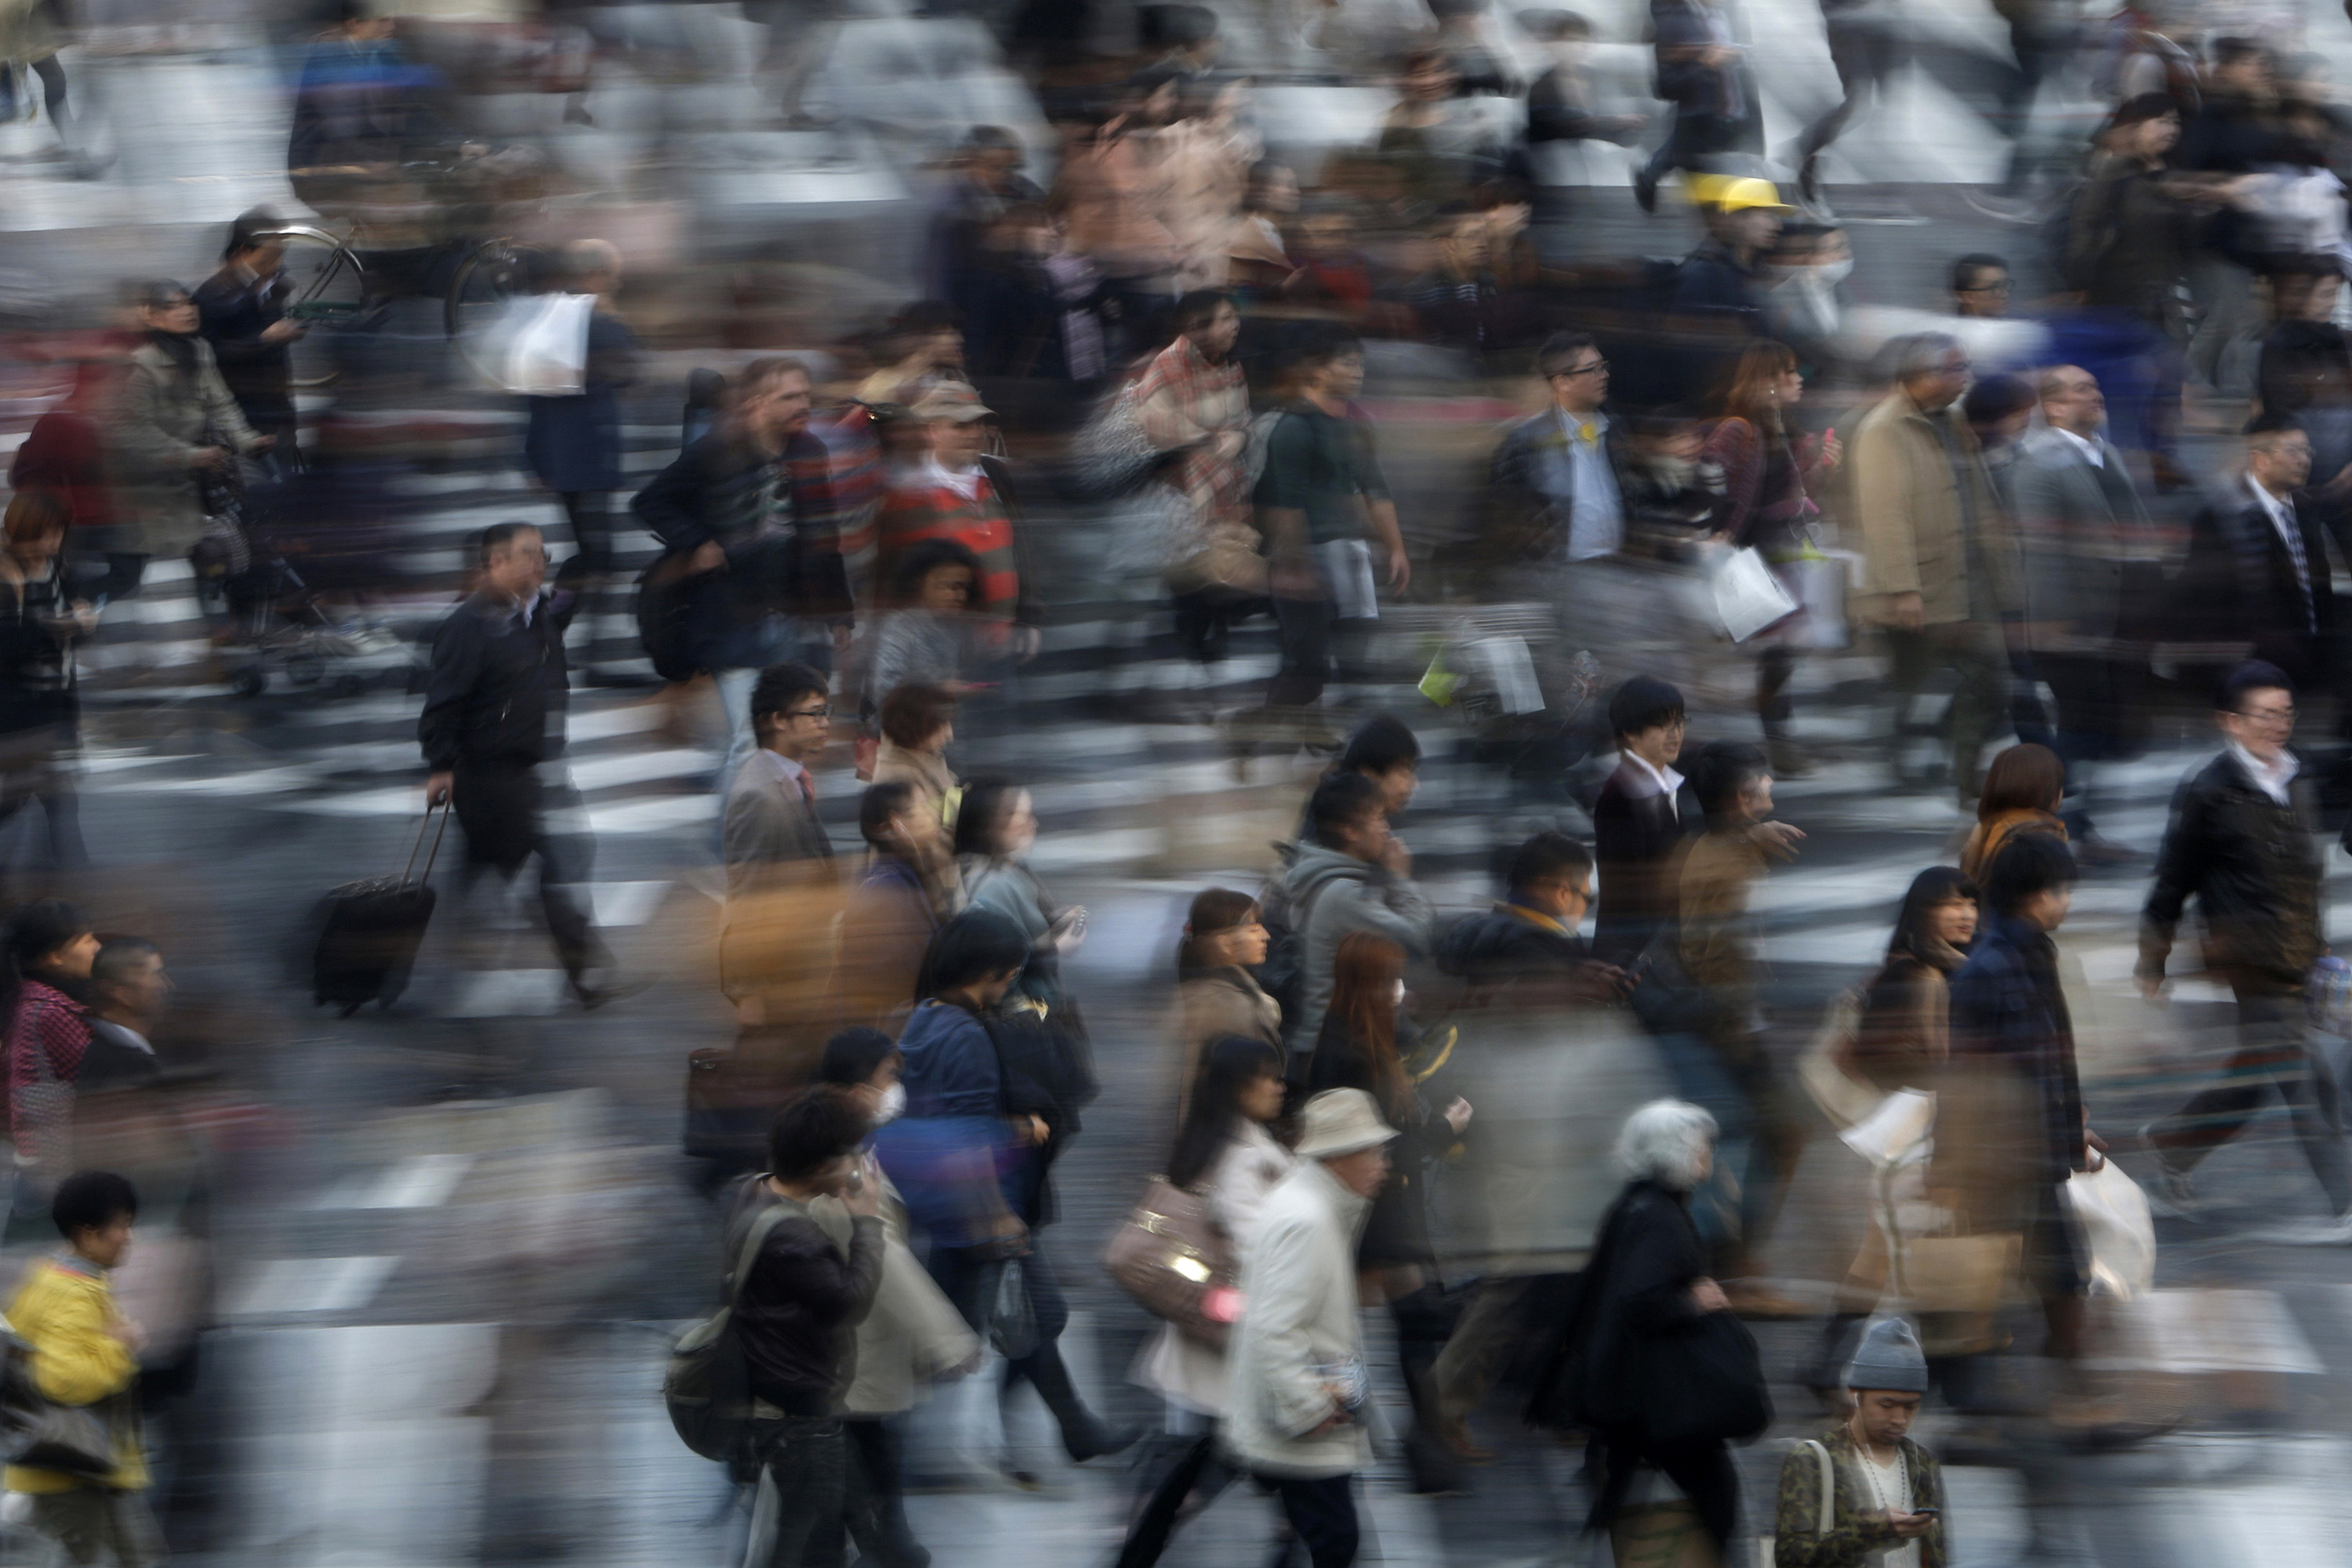 Pedestrians cross an intersection in the Shibuya district of Tokyo, Japan, on Friday, Nov. 22, 2013.